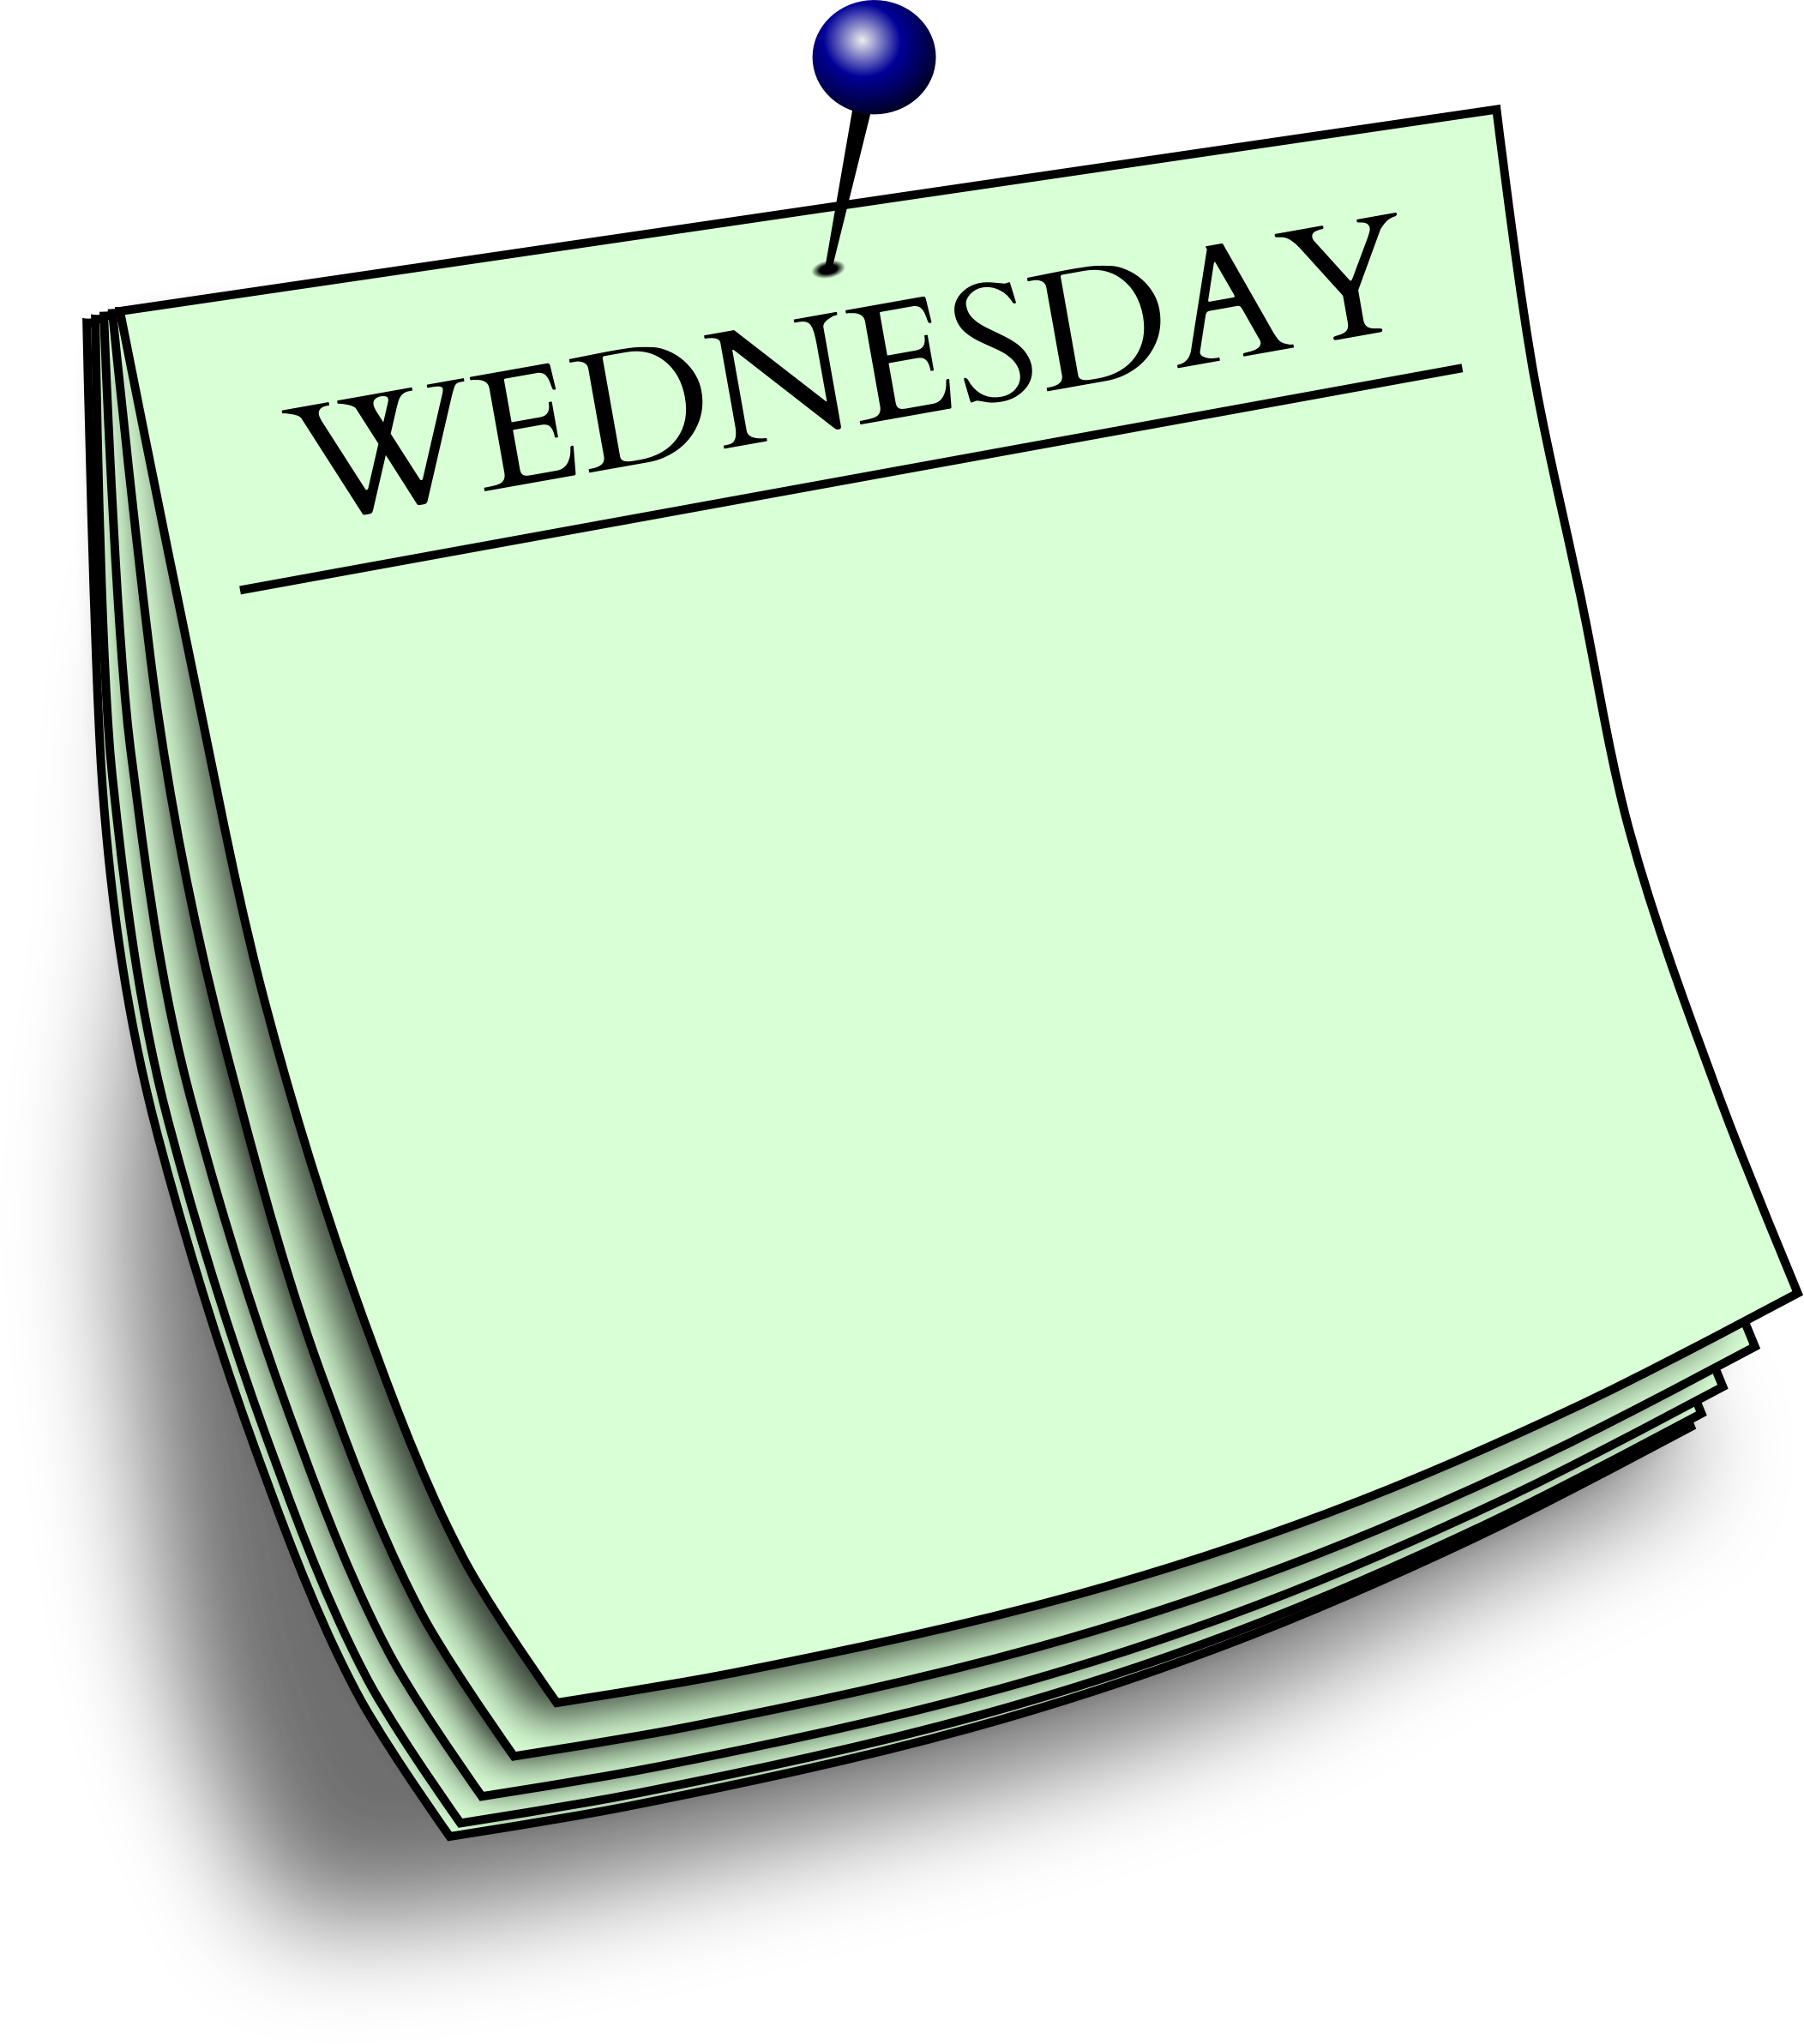 Wednesday clipart. Daily note big image